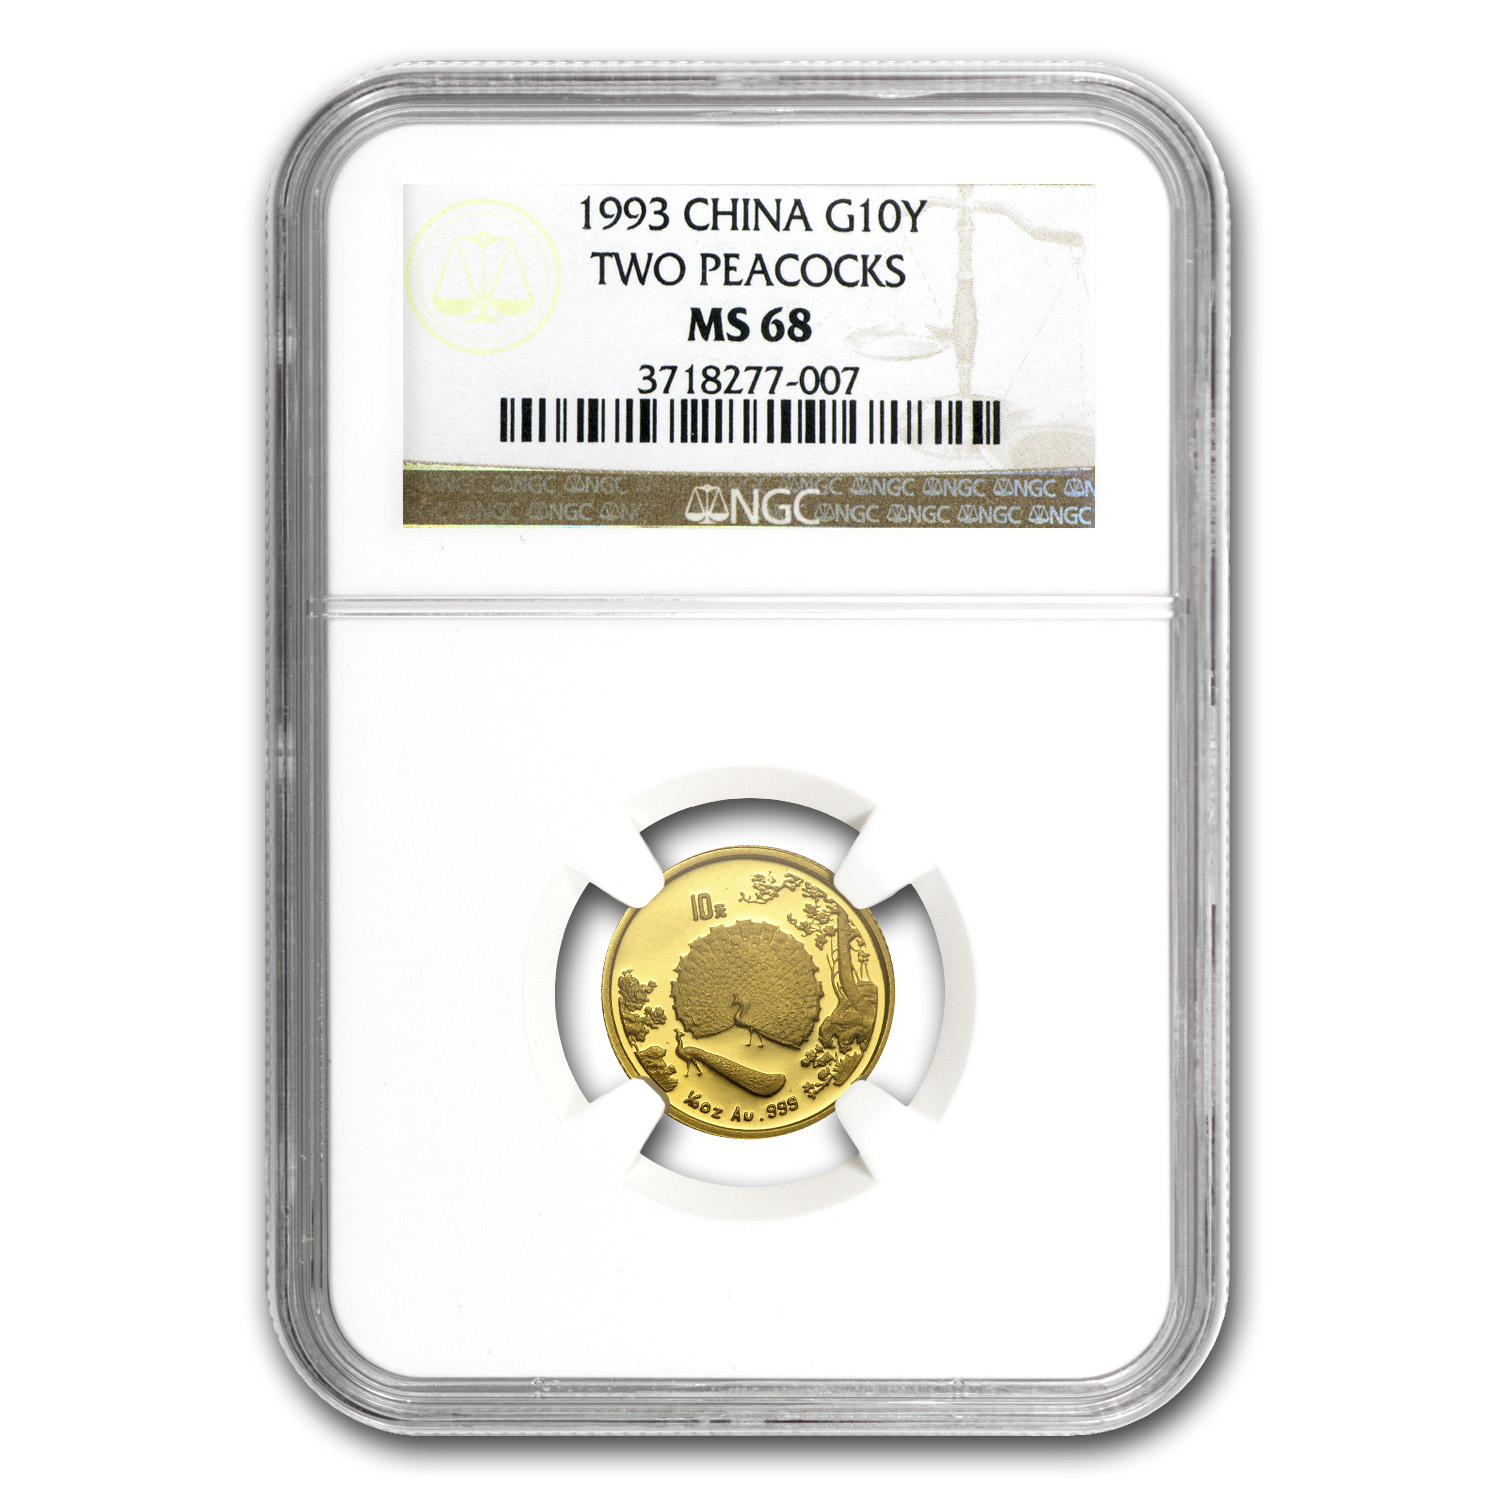 1993 China 1/10 oz Gold 10 Yuan Peacock MS-68 NGC